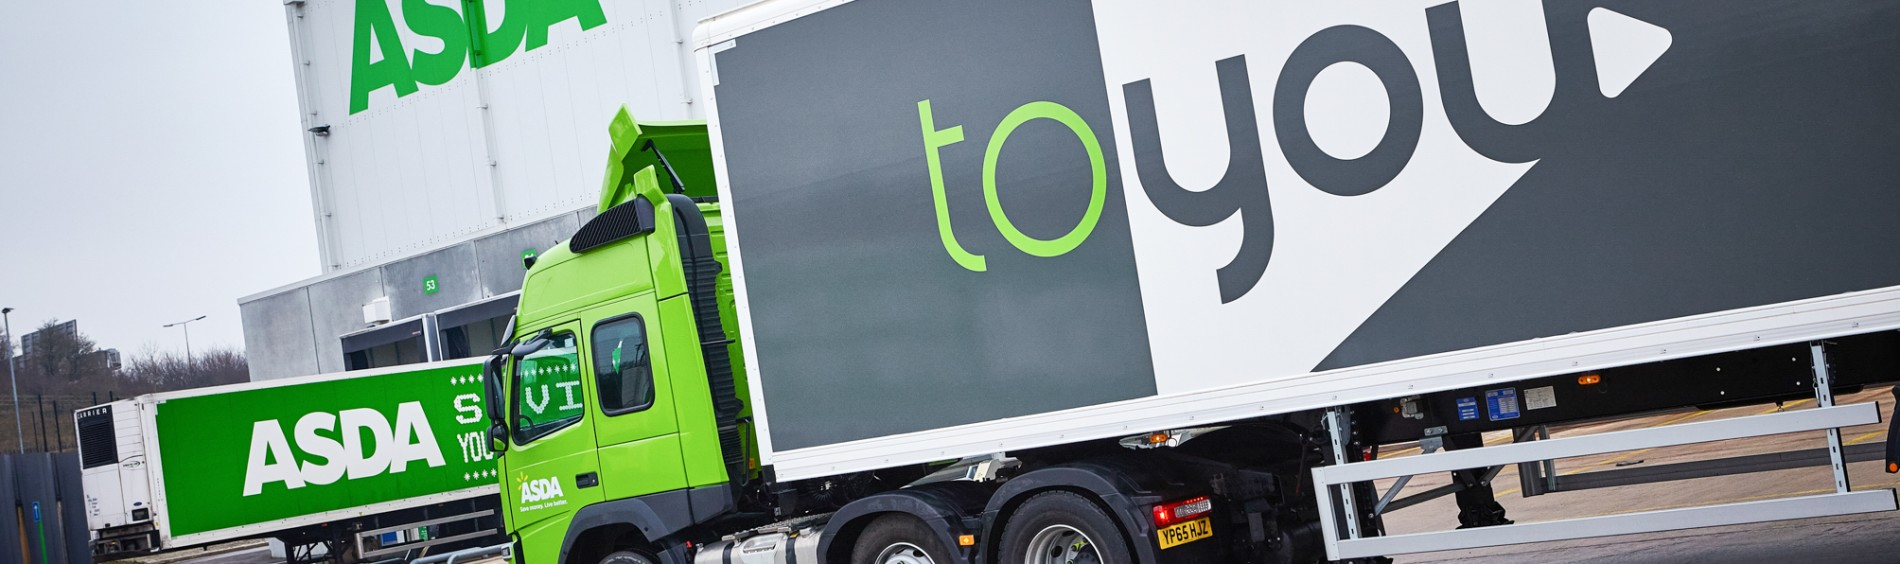 A semi-truck has the toyou logo on the side